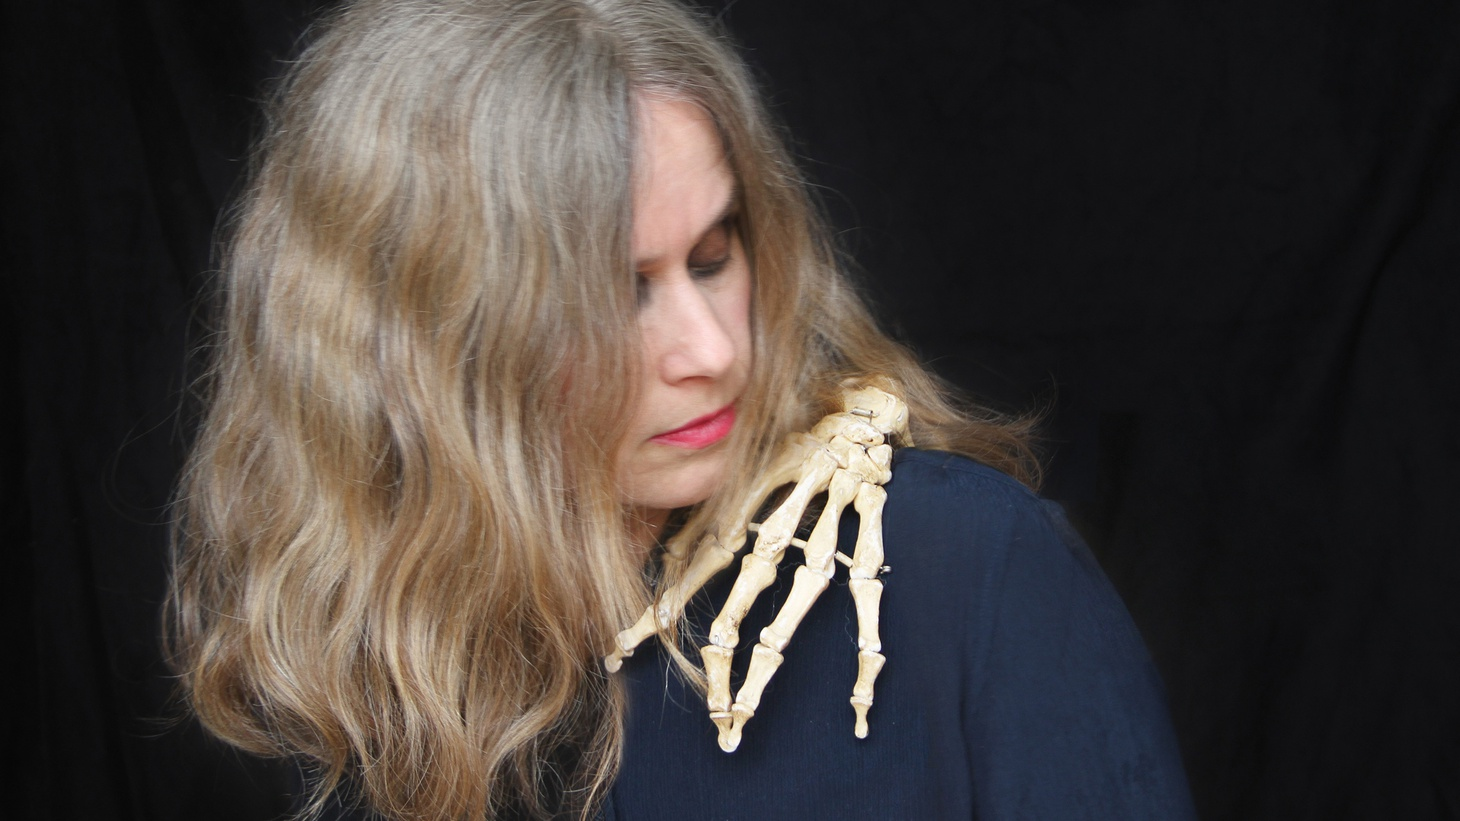 Juana Molina has a distinctly experimental sound that combines folk, pop and electronica for a hypnotic and seductive mix.